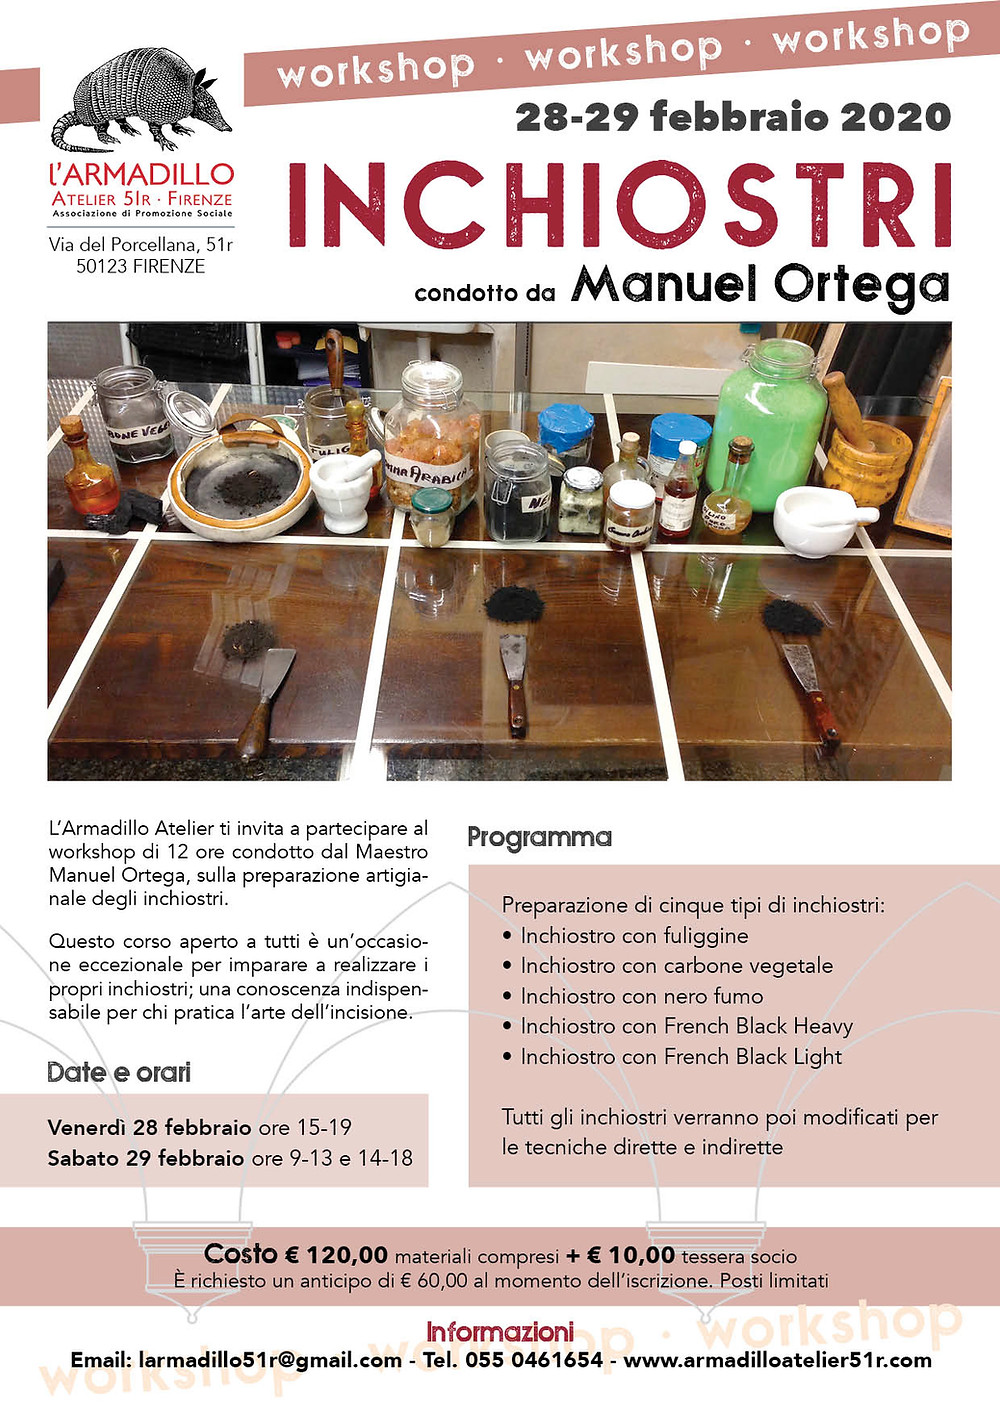 Workshop inchiostri per incisione tenuto da Manuel Ortega